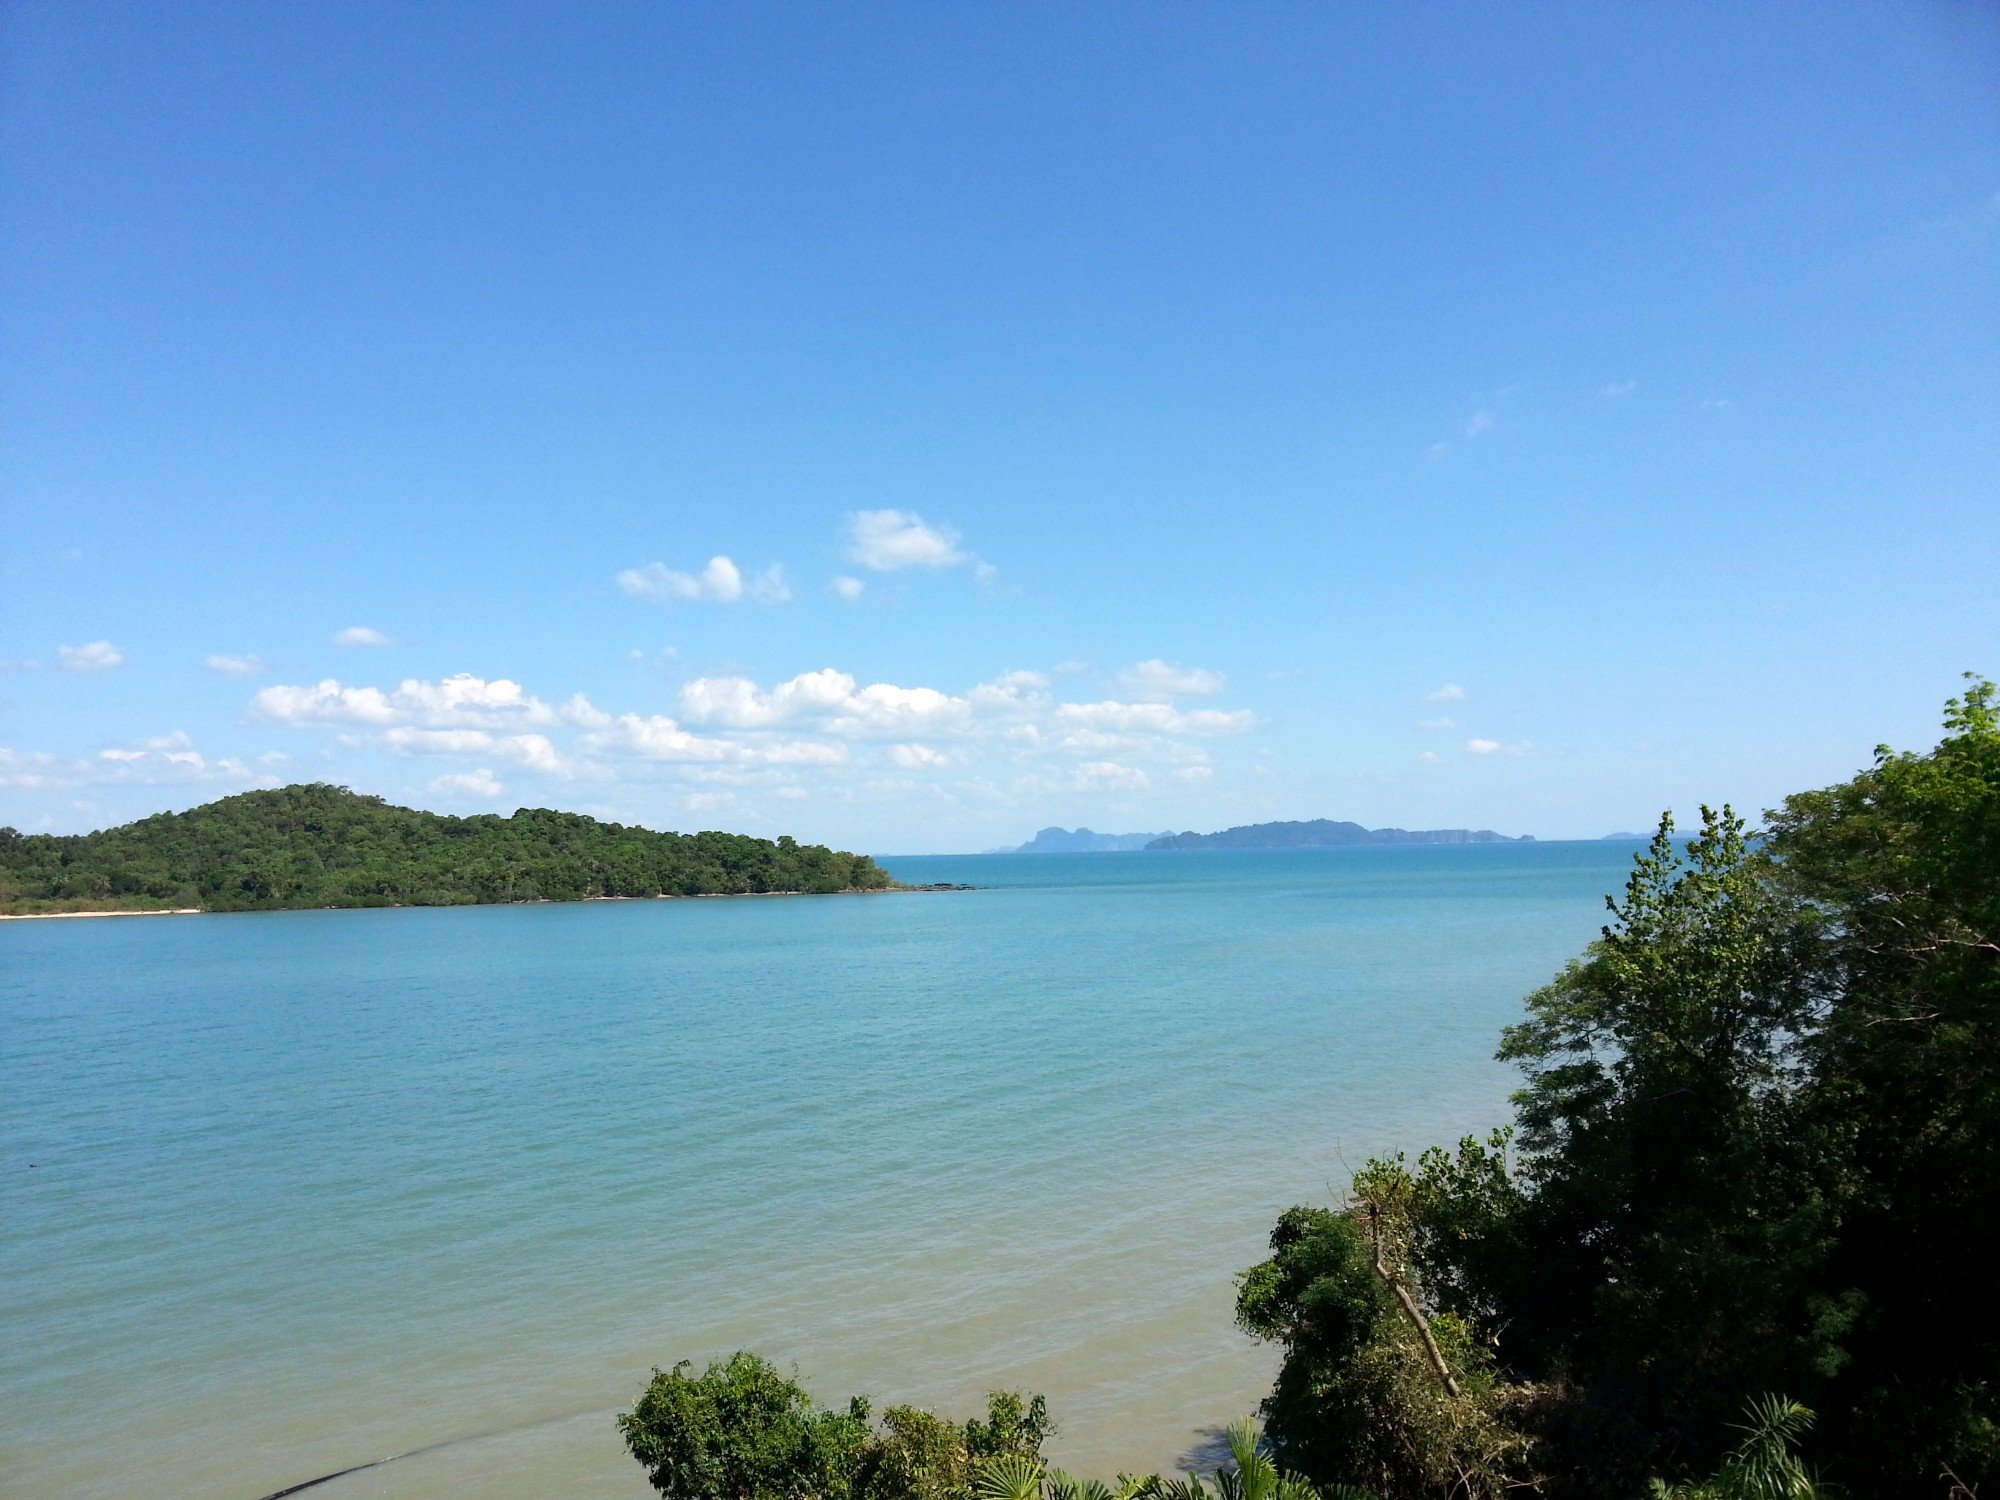 View from the east coast of Koh Lanta